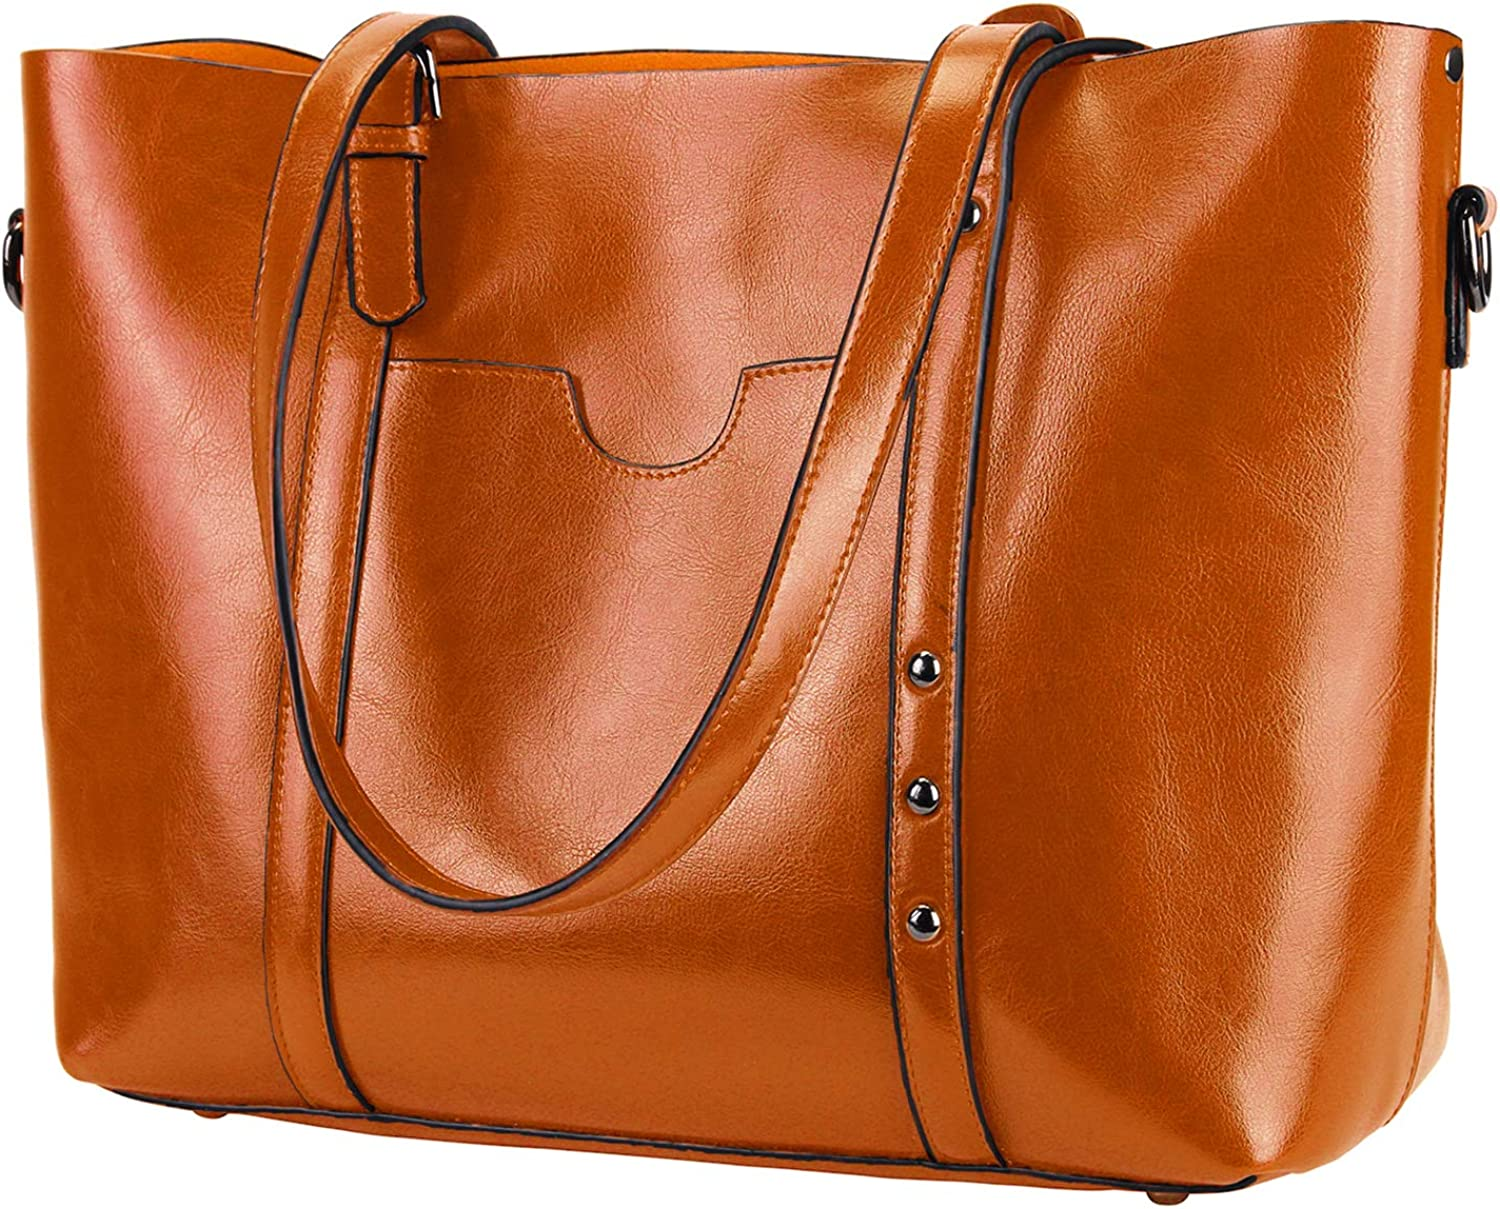 YALUXE Leather Shouldr Bag for Handbags Satchel Boston Mall and Time sale Purses Women